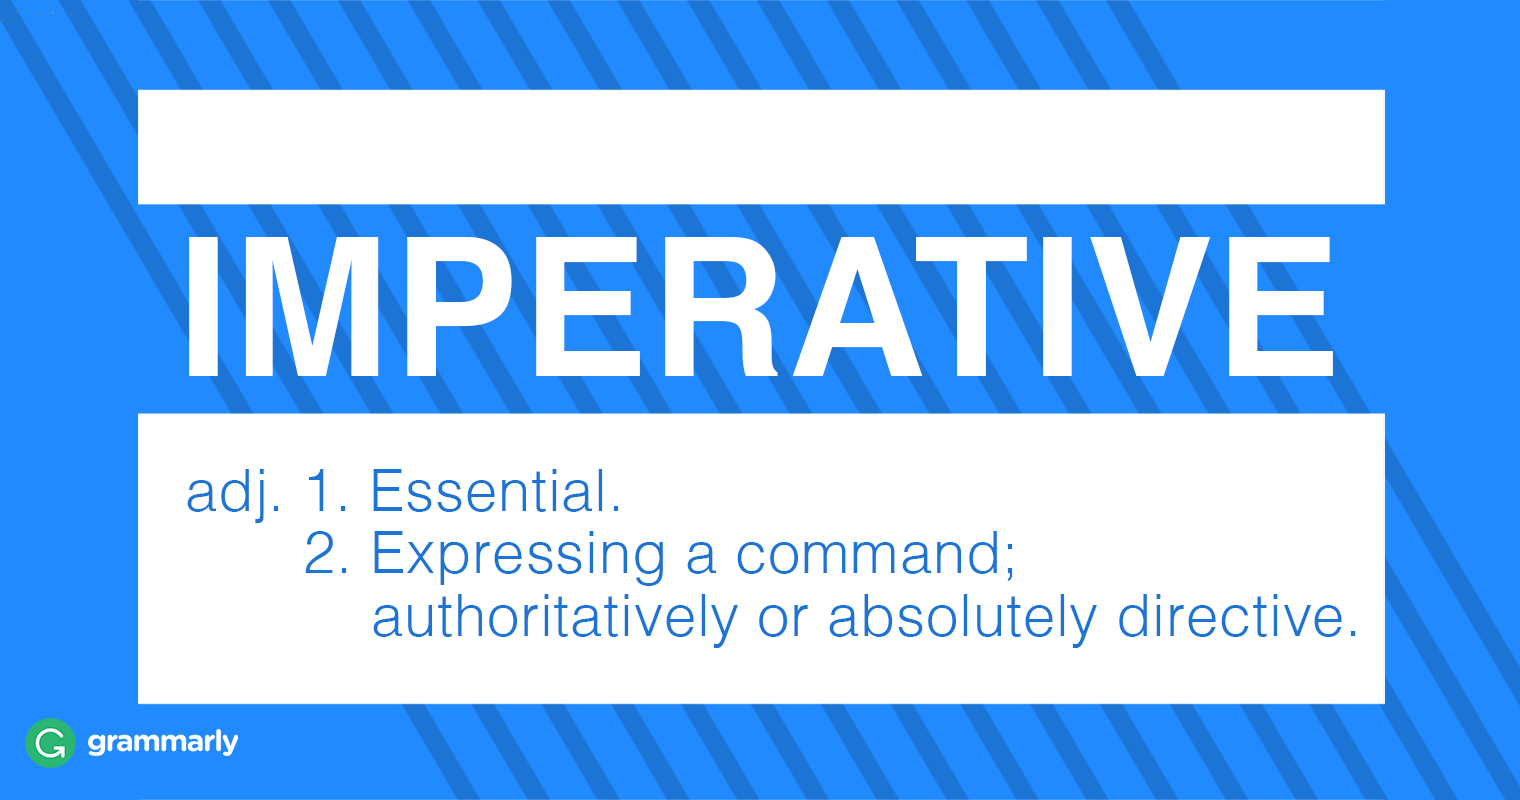 Imperative adj. 1. Essential. 2. Expressing a command; authoritatively or absolutely directive.